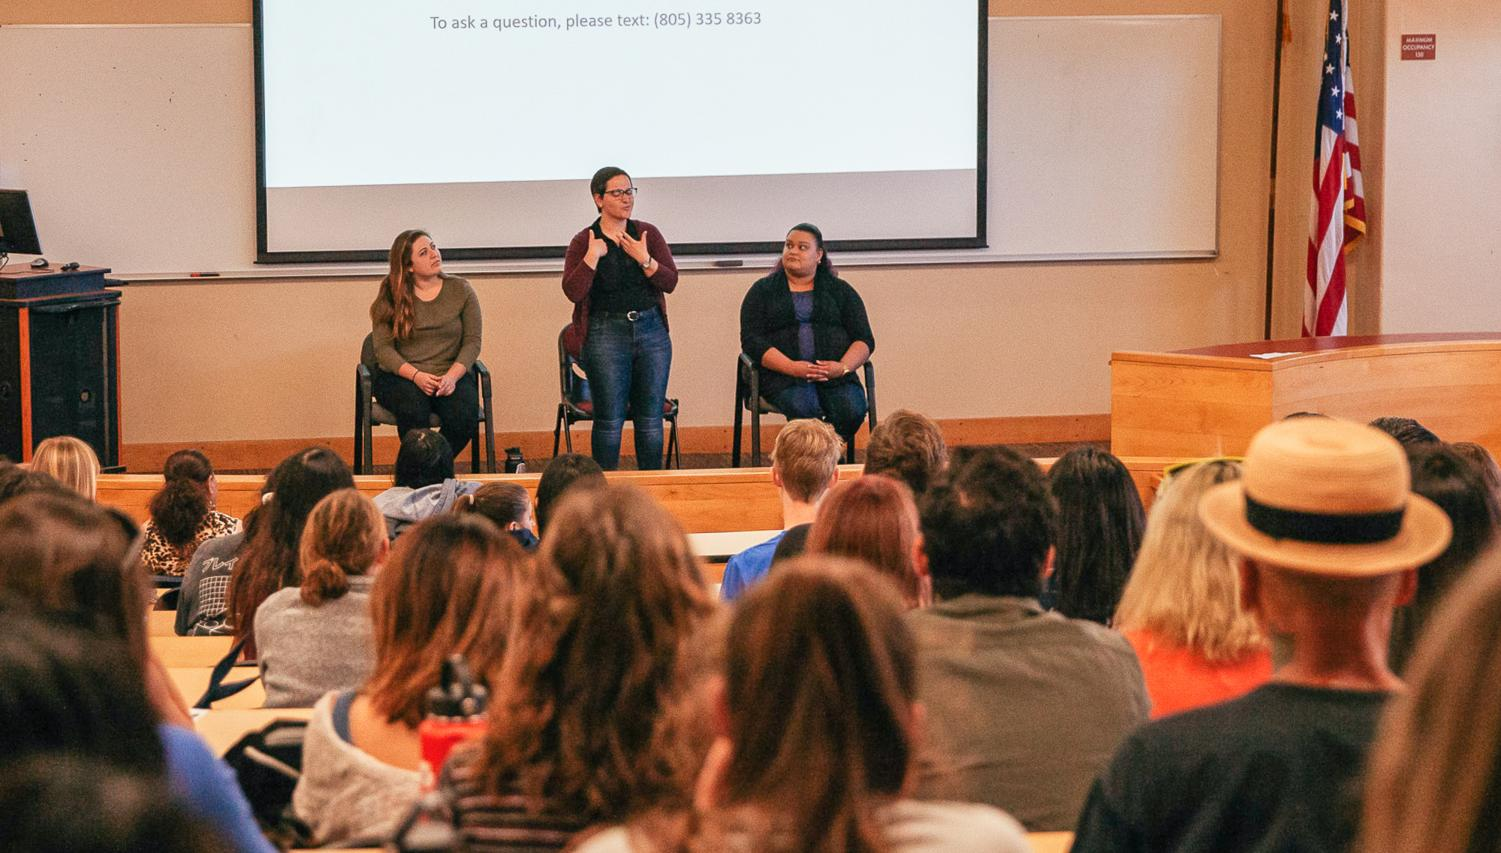 From left, Allie Scudelarl, Glory McGuigan, and Rossio Zavala Perez answer questions about their experiences in California State University's sign language interpreation program. The entire panel discussion was given in American Sign Language on Friday, April 12, 2019, in the MacDougall Administration Building Room 211 at City College in Santa Barbara Calif.